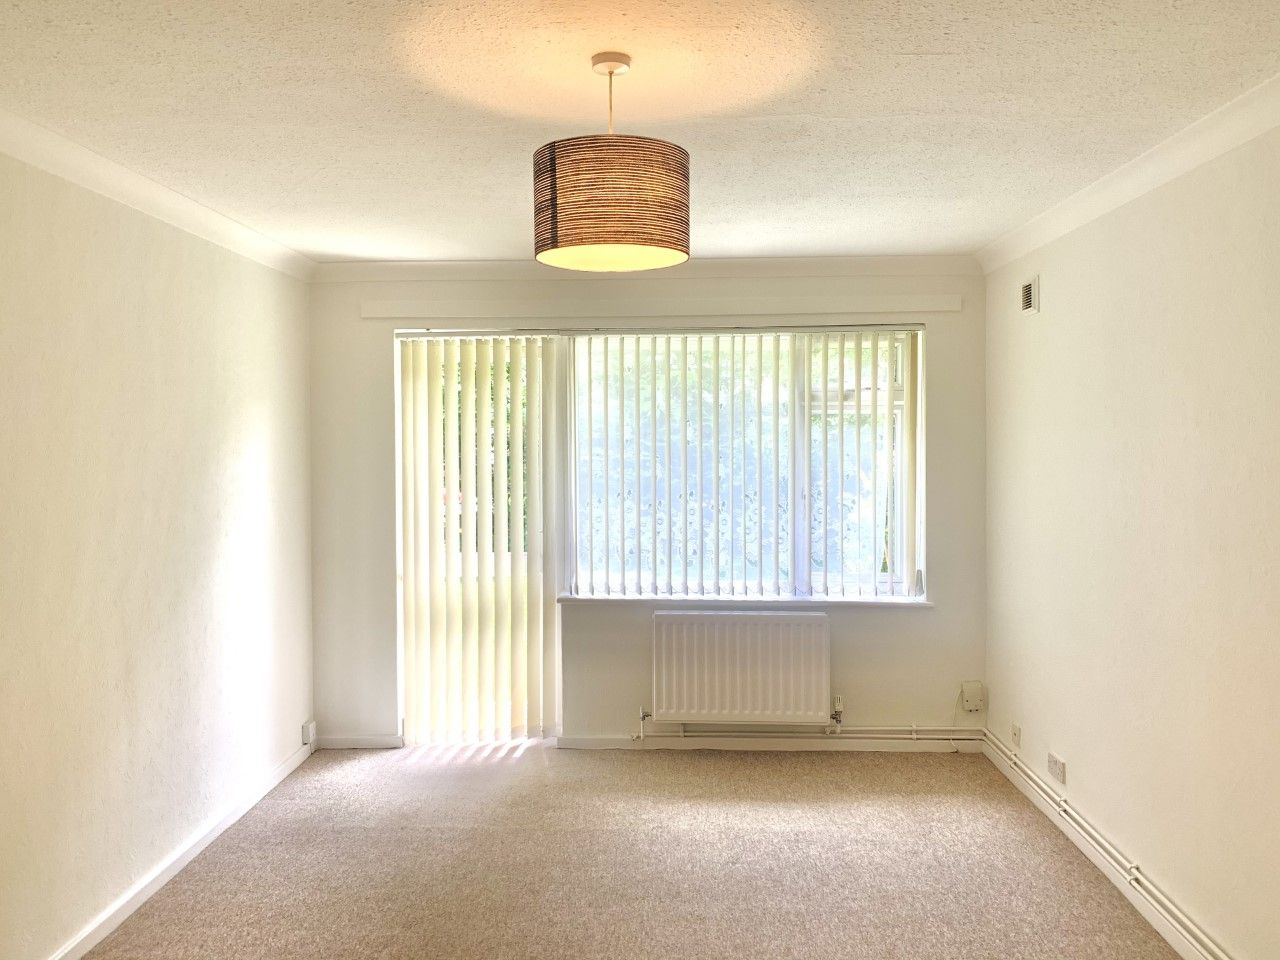 1 bedroom ground floor flat/apartment To Let in Worcester Park - Photograph 1.